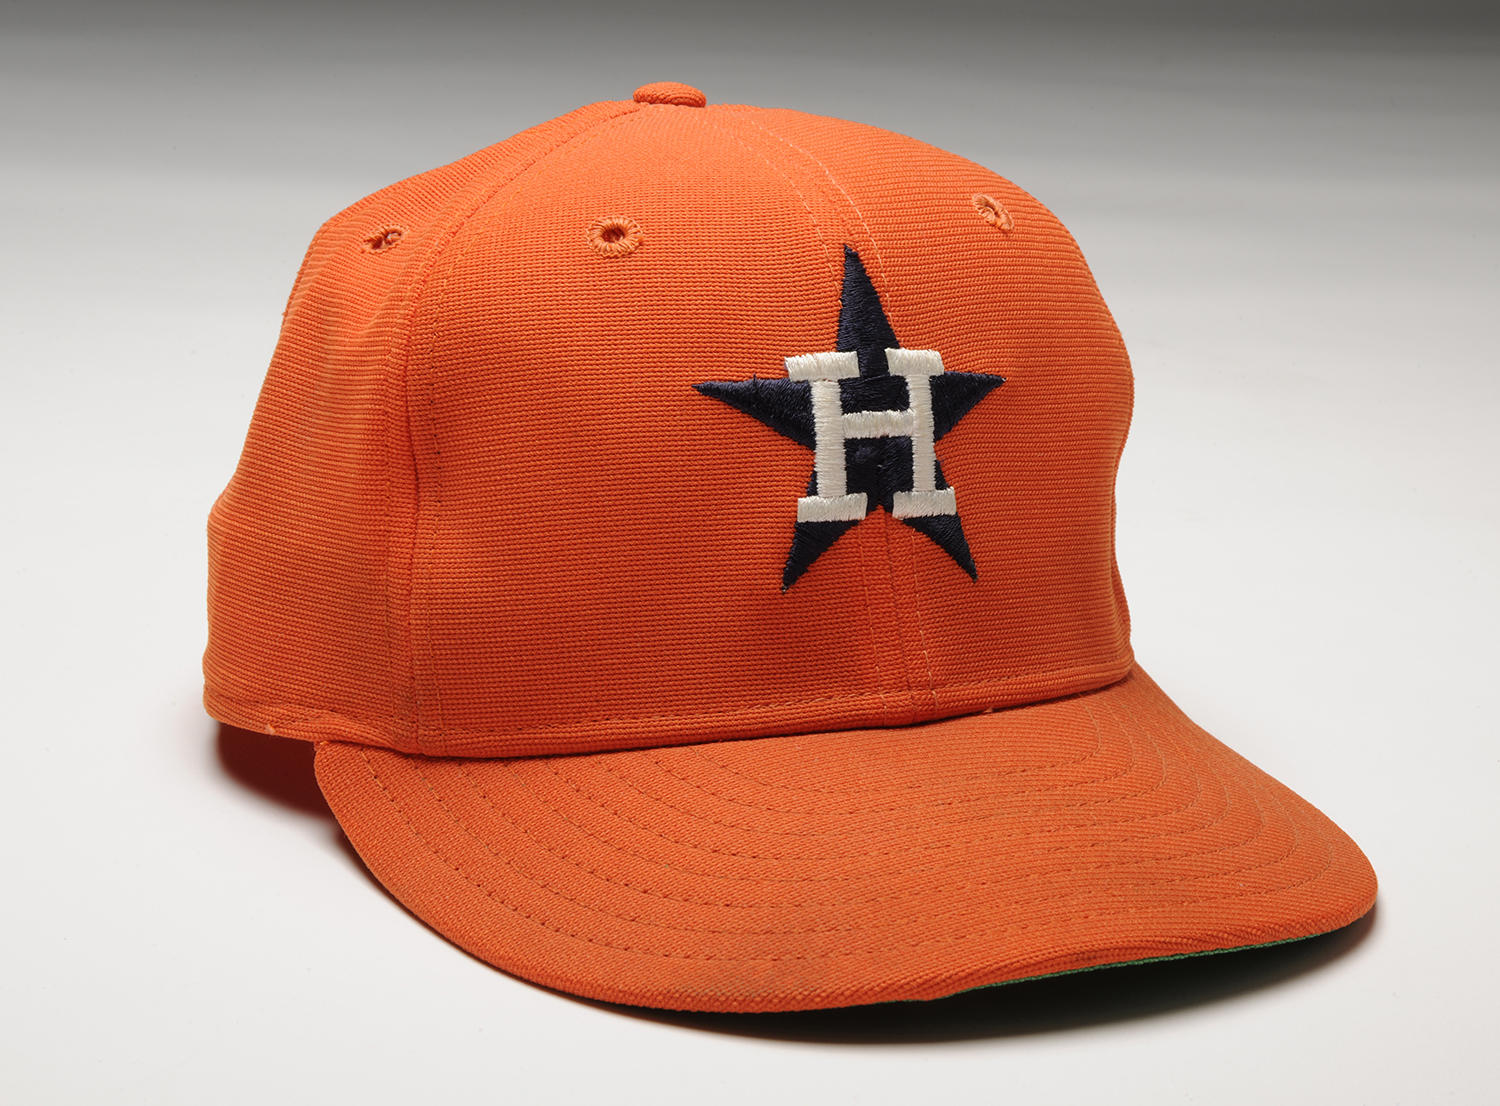 """This cap, worn by Nolan Ryan while pitching his fifth no-hitter on Sept. 26, 1981, is currently on display in the """"We Are Baseball"""" nationwide tour. (Milo Stewart Jr. / National Baseball Hall of Fame)"""